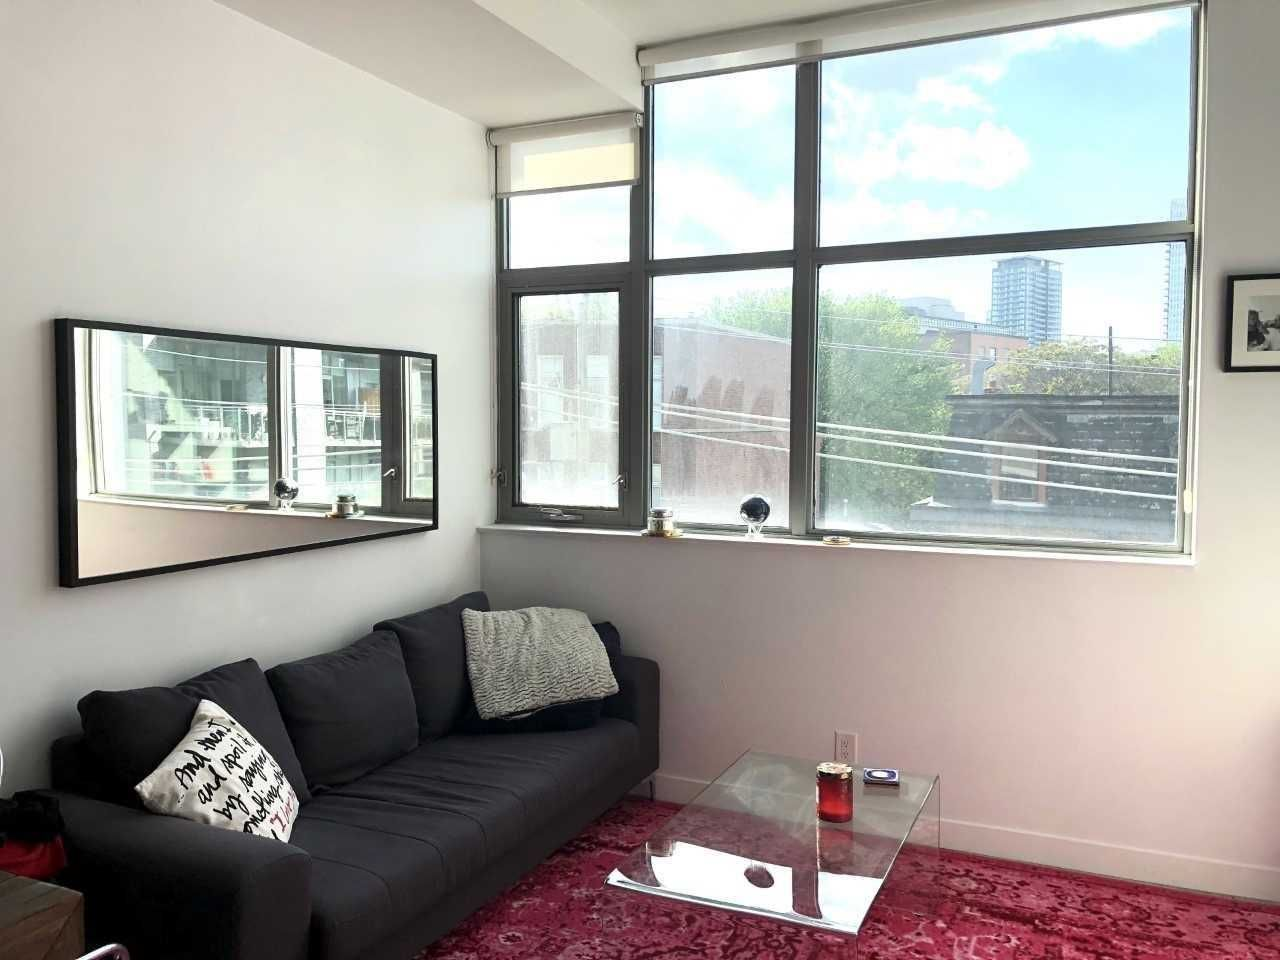 569 King St E, unit 305 for rent in Toronto - image #1